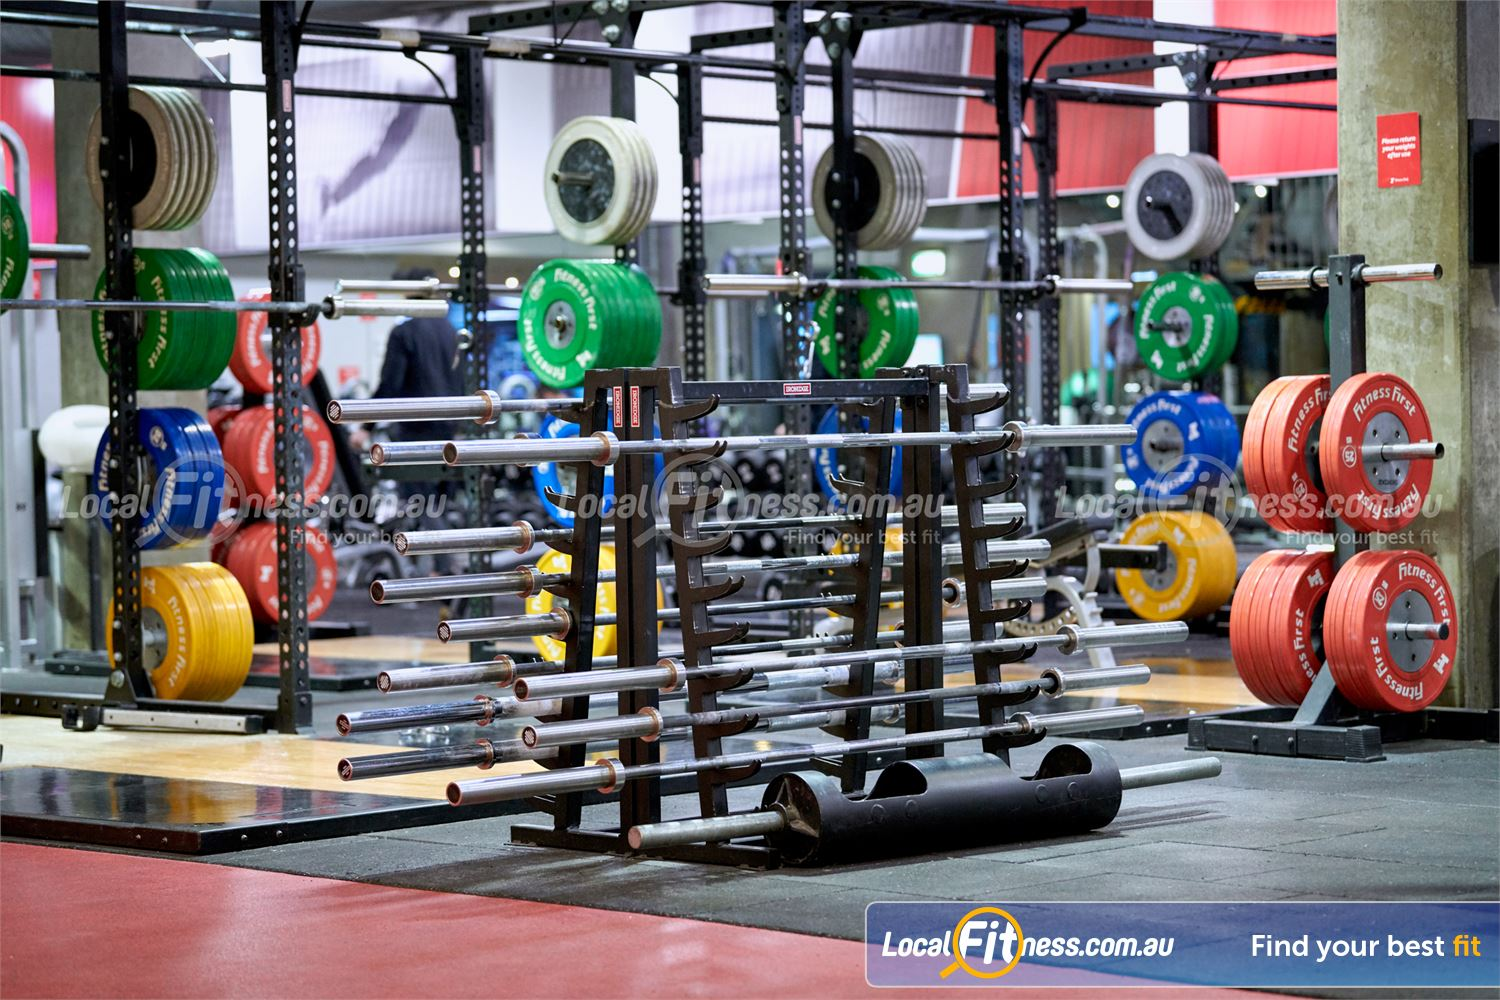 Fitness First Victoria Gardens Near Richmond North A full range of speciality bars in our 24/7 Richmond gym.